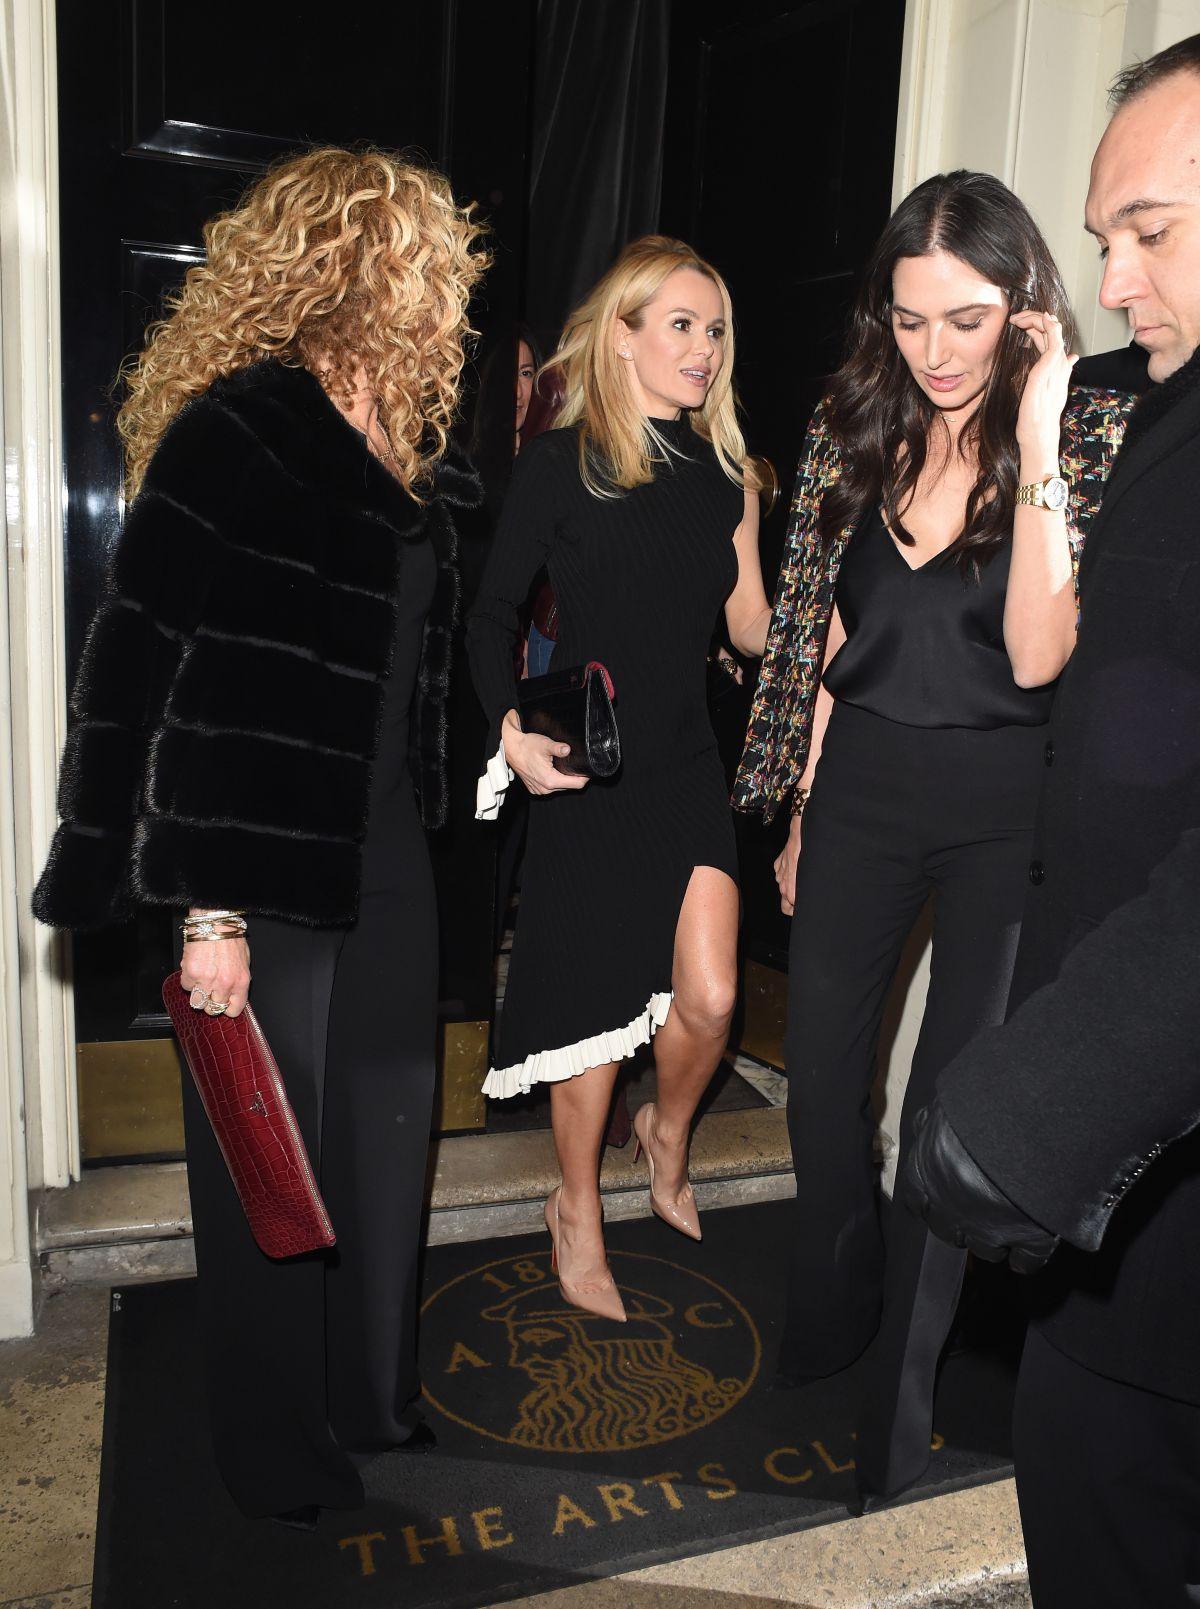 4dcddf46e9650 AMANDA HOLDEN and LAUREN SILVERMAN Night Out in London 02 07 2017